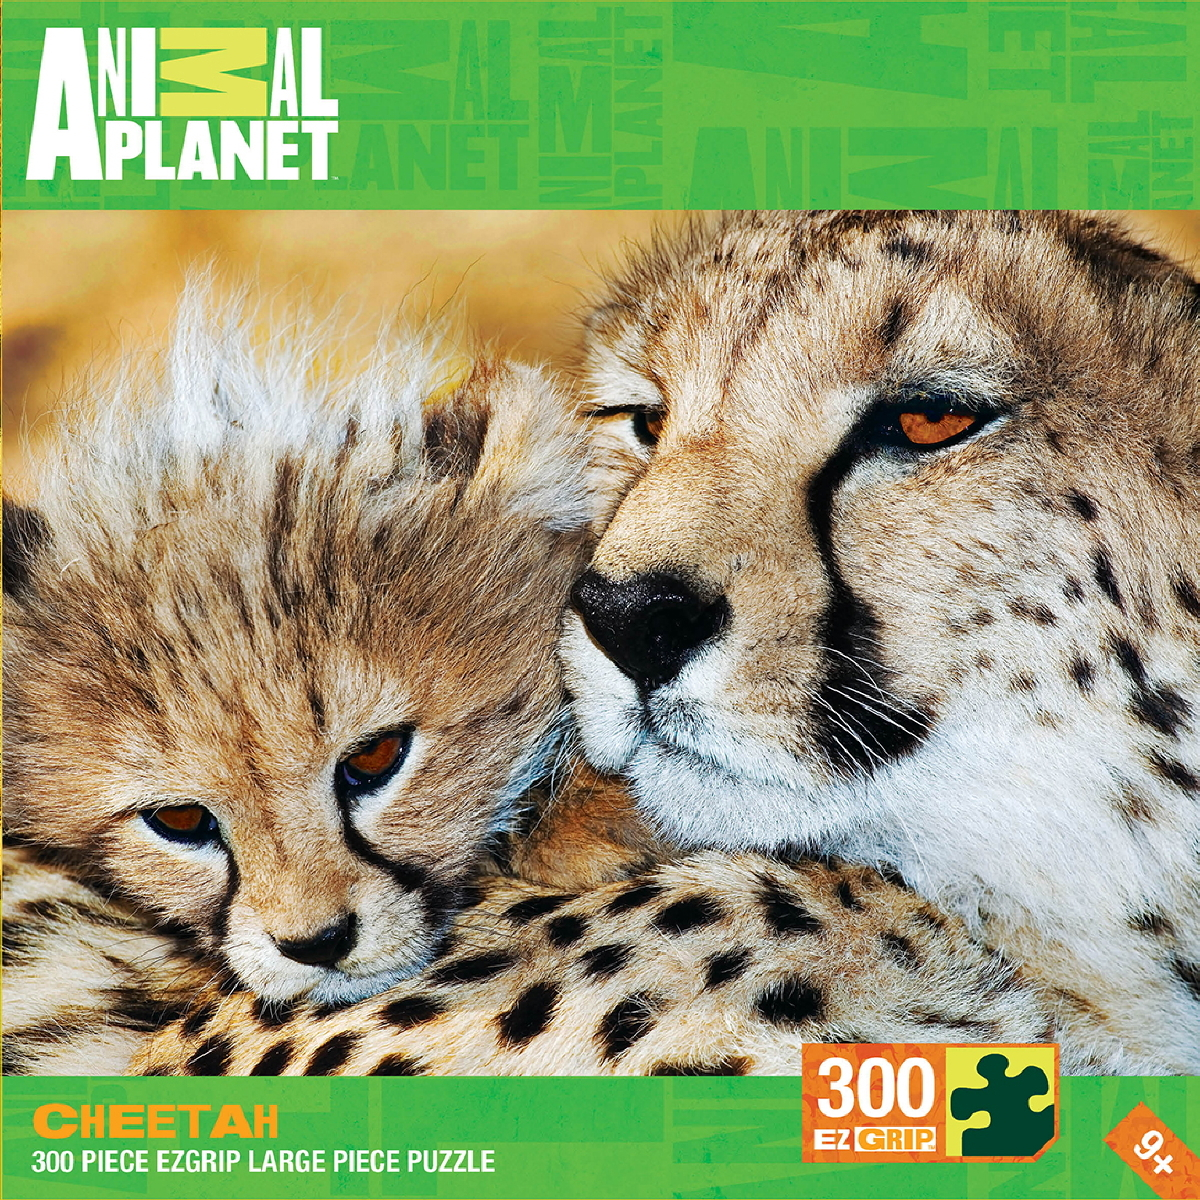 Animal Planet Cheetah 300 Piece Puzzle,  Big Cats by Masterpieces Puzzle Co.